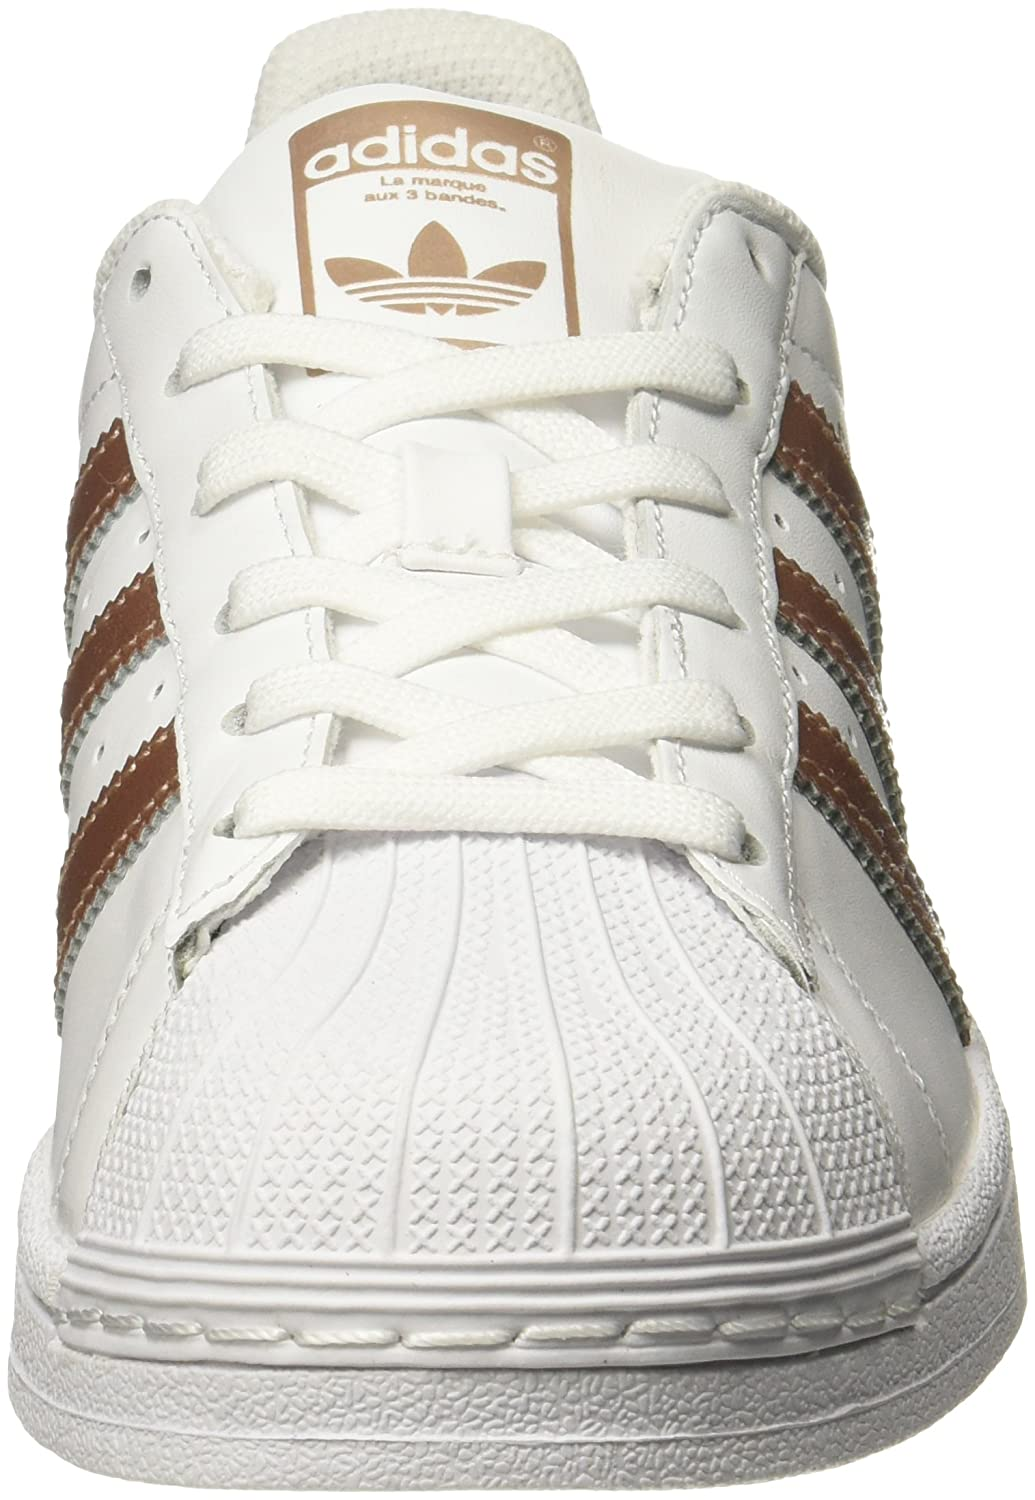 6ccff6e1d524 adidas Women s Superstar W Low-Top Sneakers White  Amazon.co.uk  Shoes    Bags